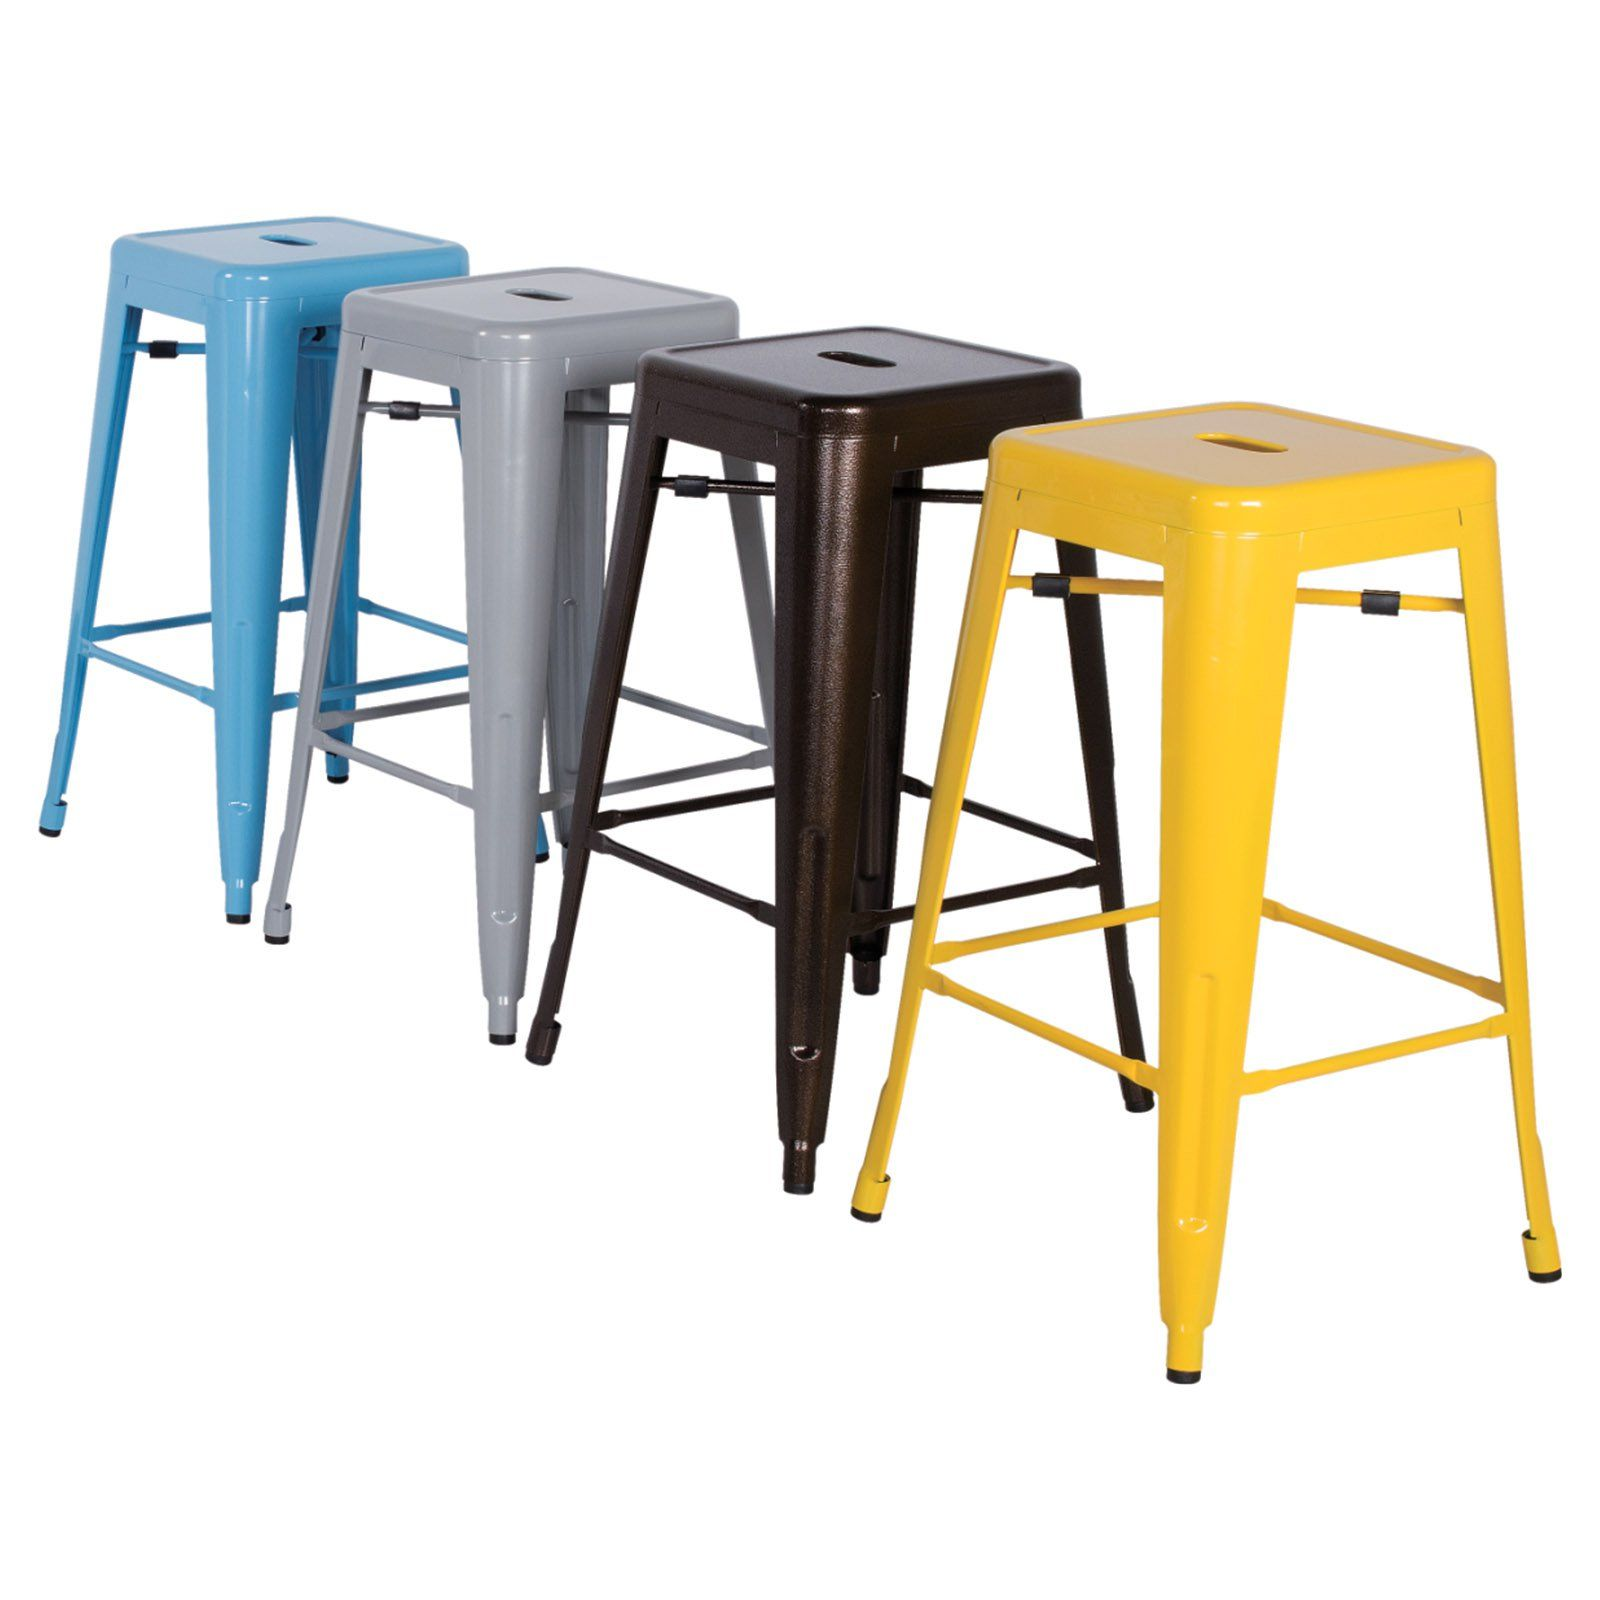 Chintaly Tremont 30 in Galvanized Steel Backless Bar Stools Set